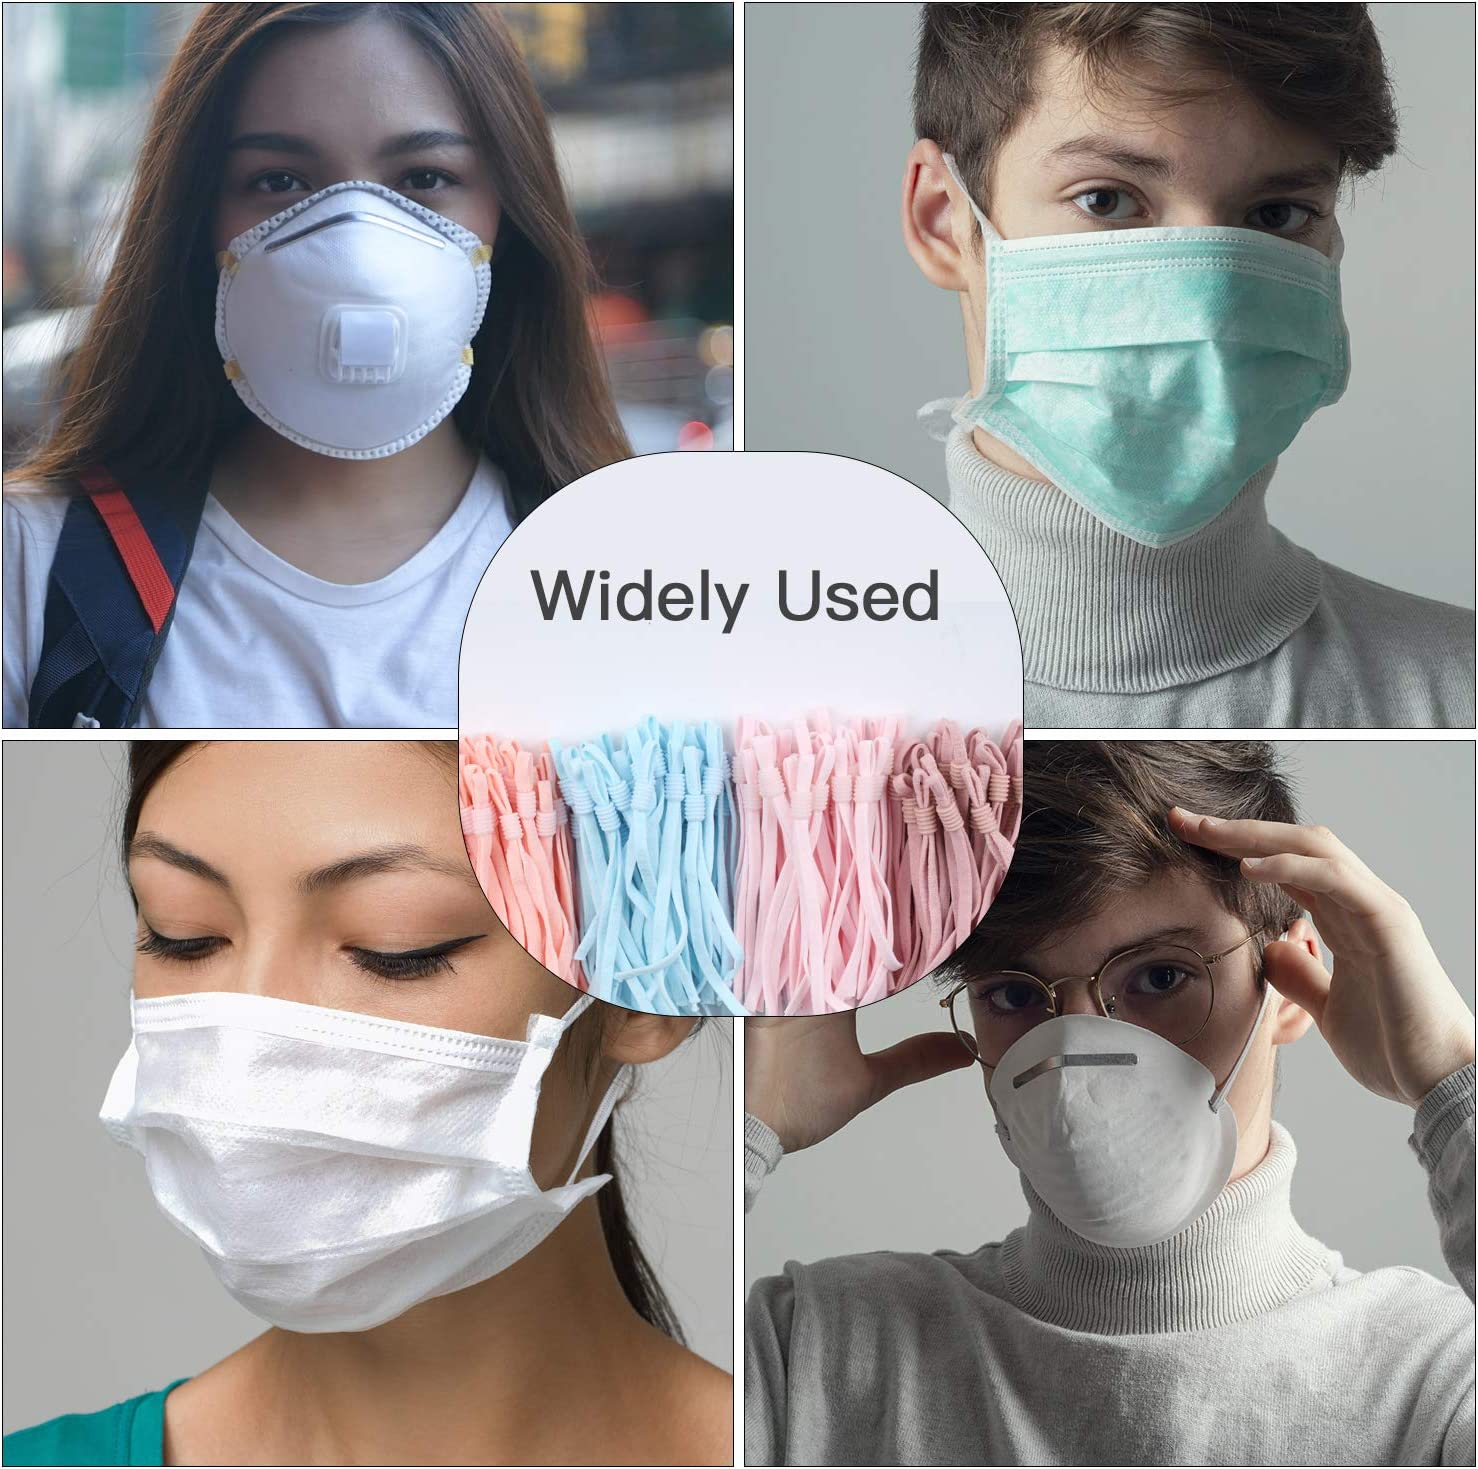 Stretchy Face Cover Earloop for Crafts DIY Mask AMLY 60 Pcs Elastic String Bands Cord Rope for Sewing with Premium Cord Lock